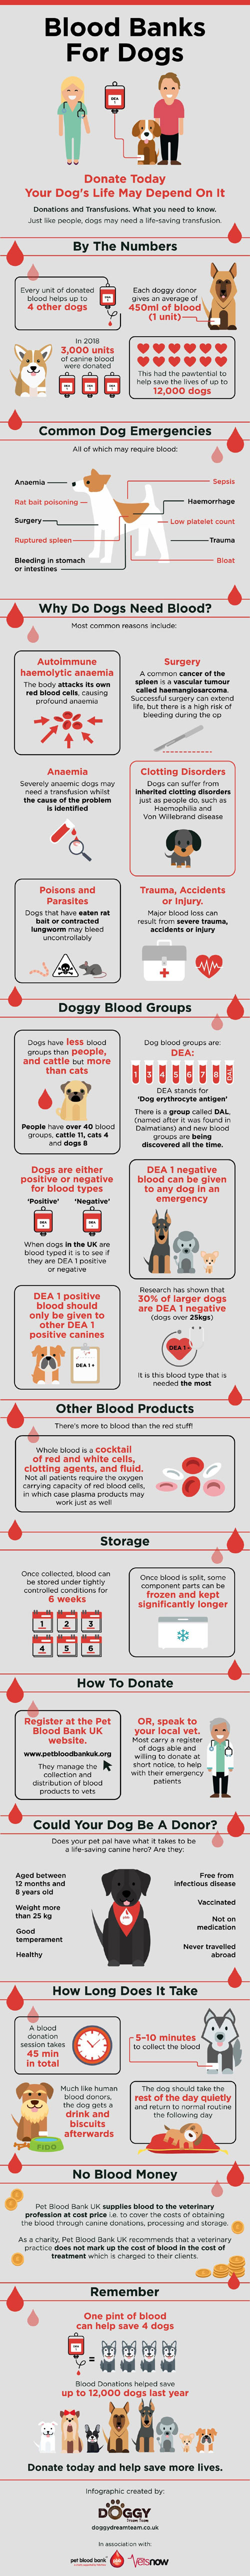 Dog Blood Banks infographic